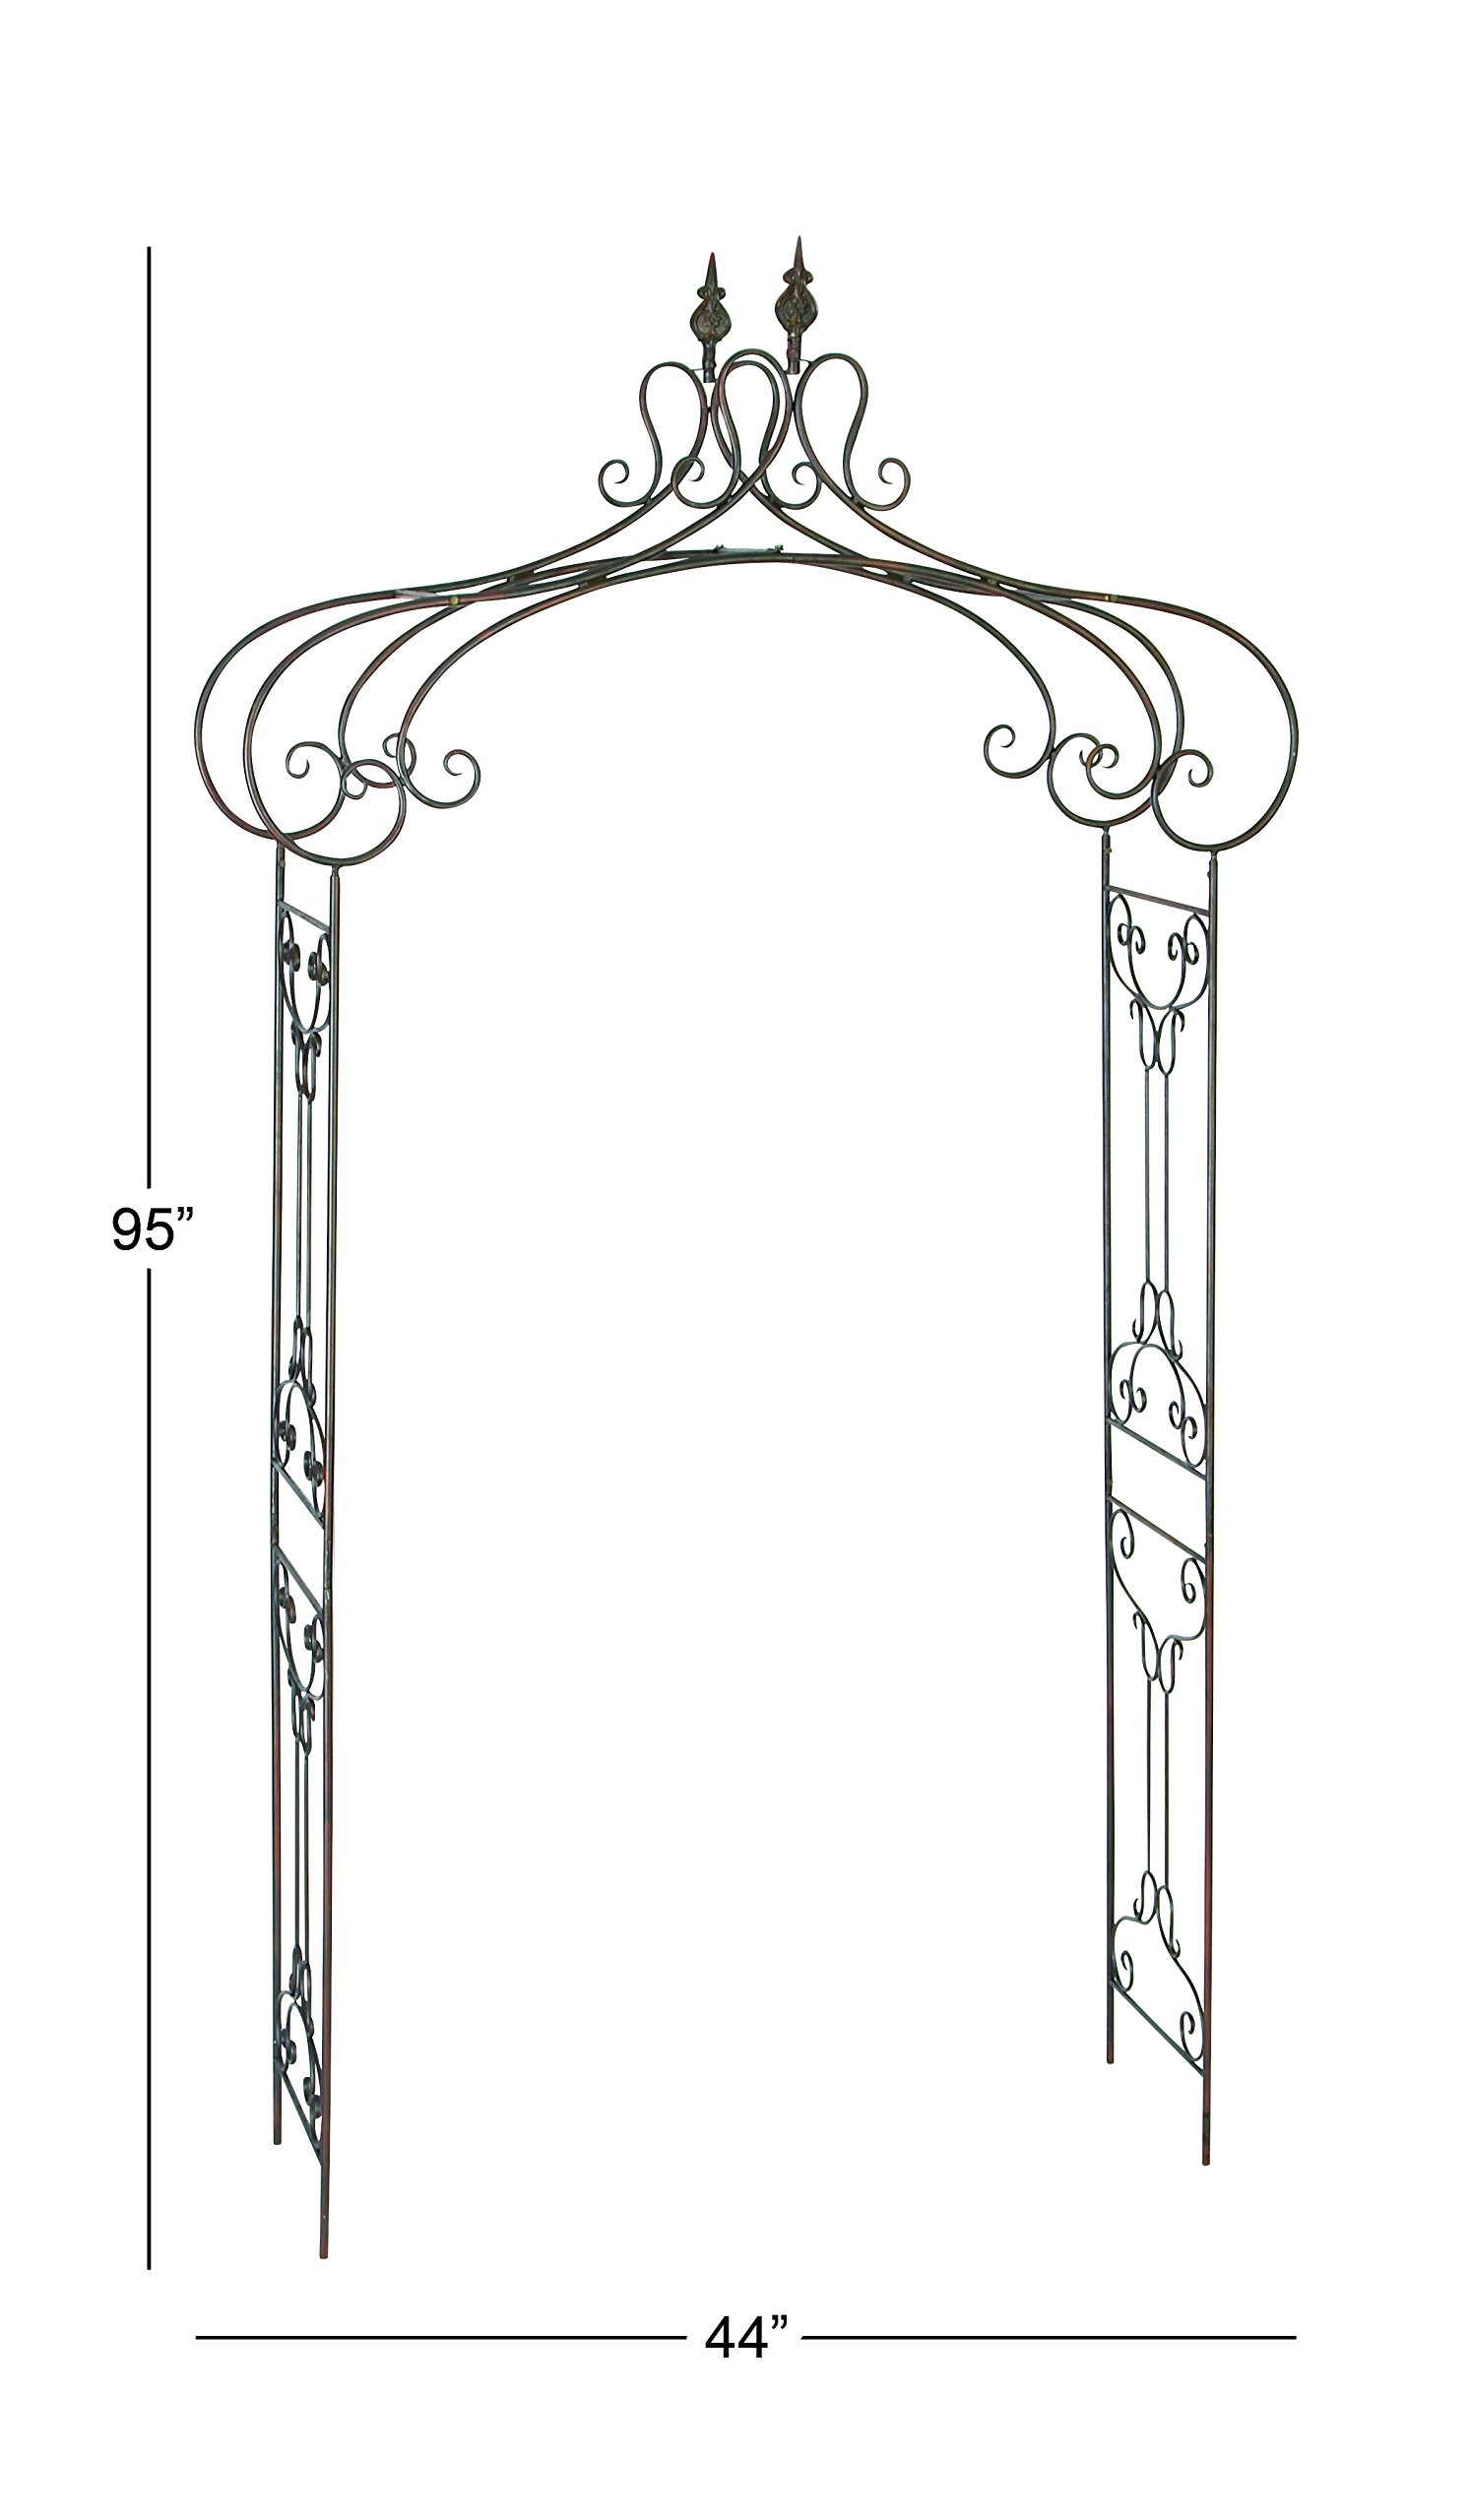 Deco 79 68701 Metal Garden Arch, 44 by 95-Inch